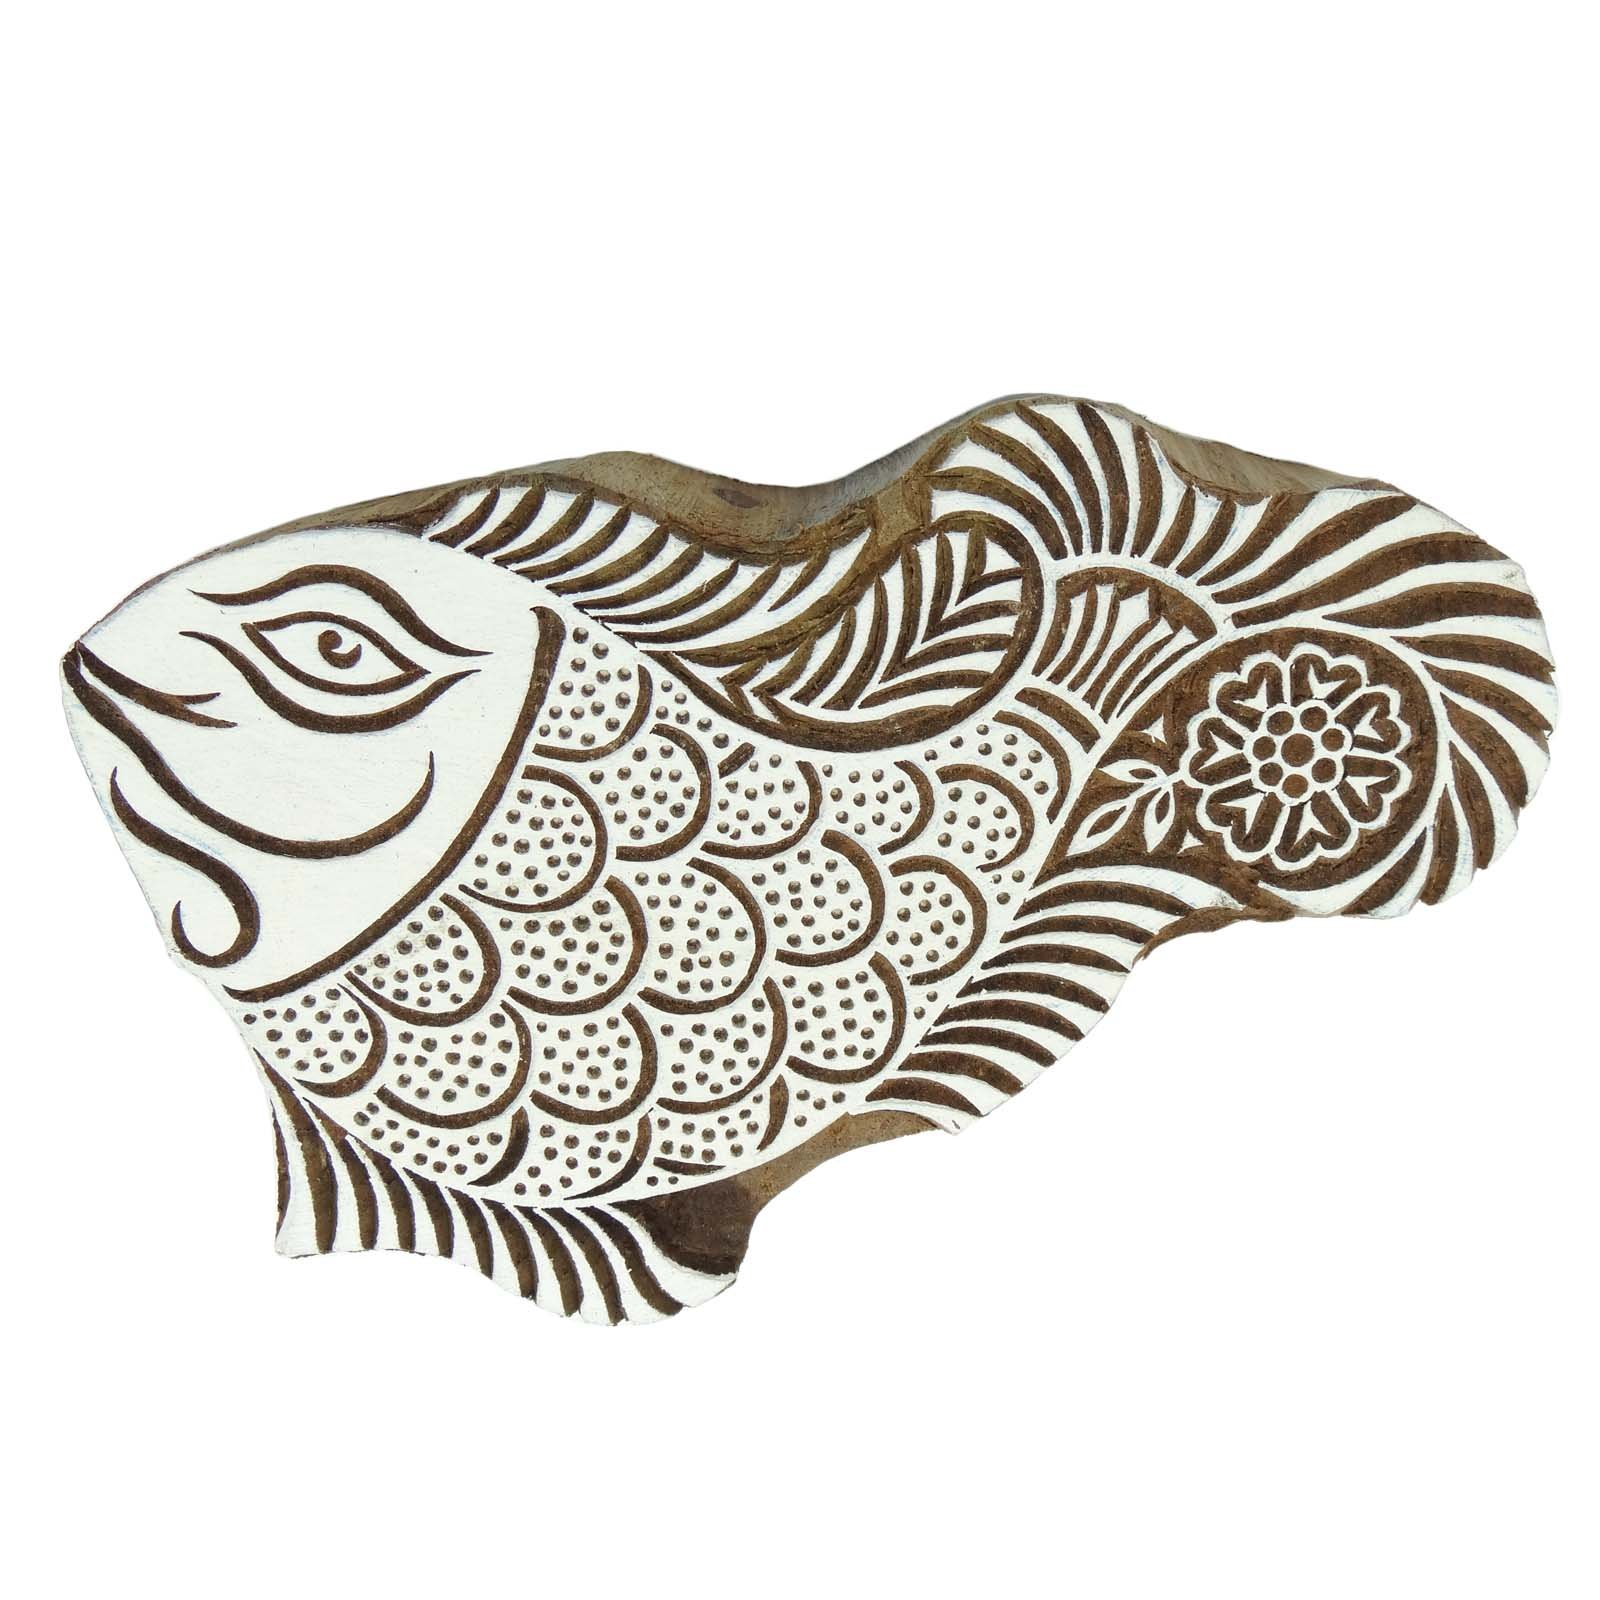 Decorative Fish Wooden Block Carved Textile Stamp Collectible Blocks